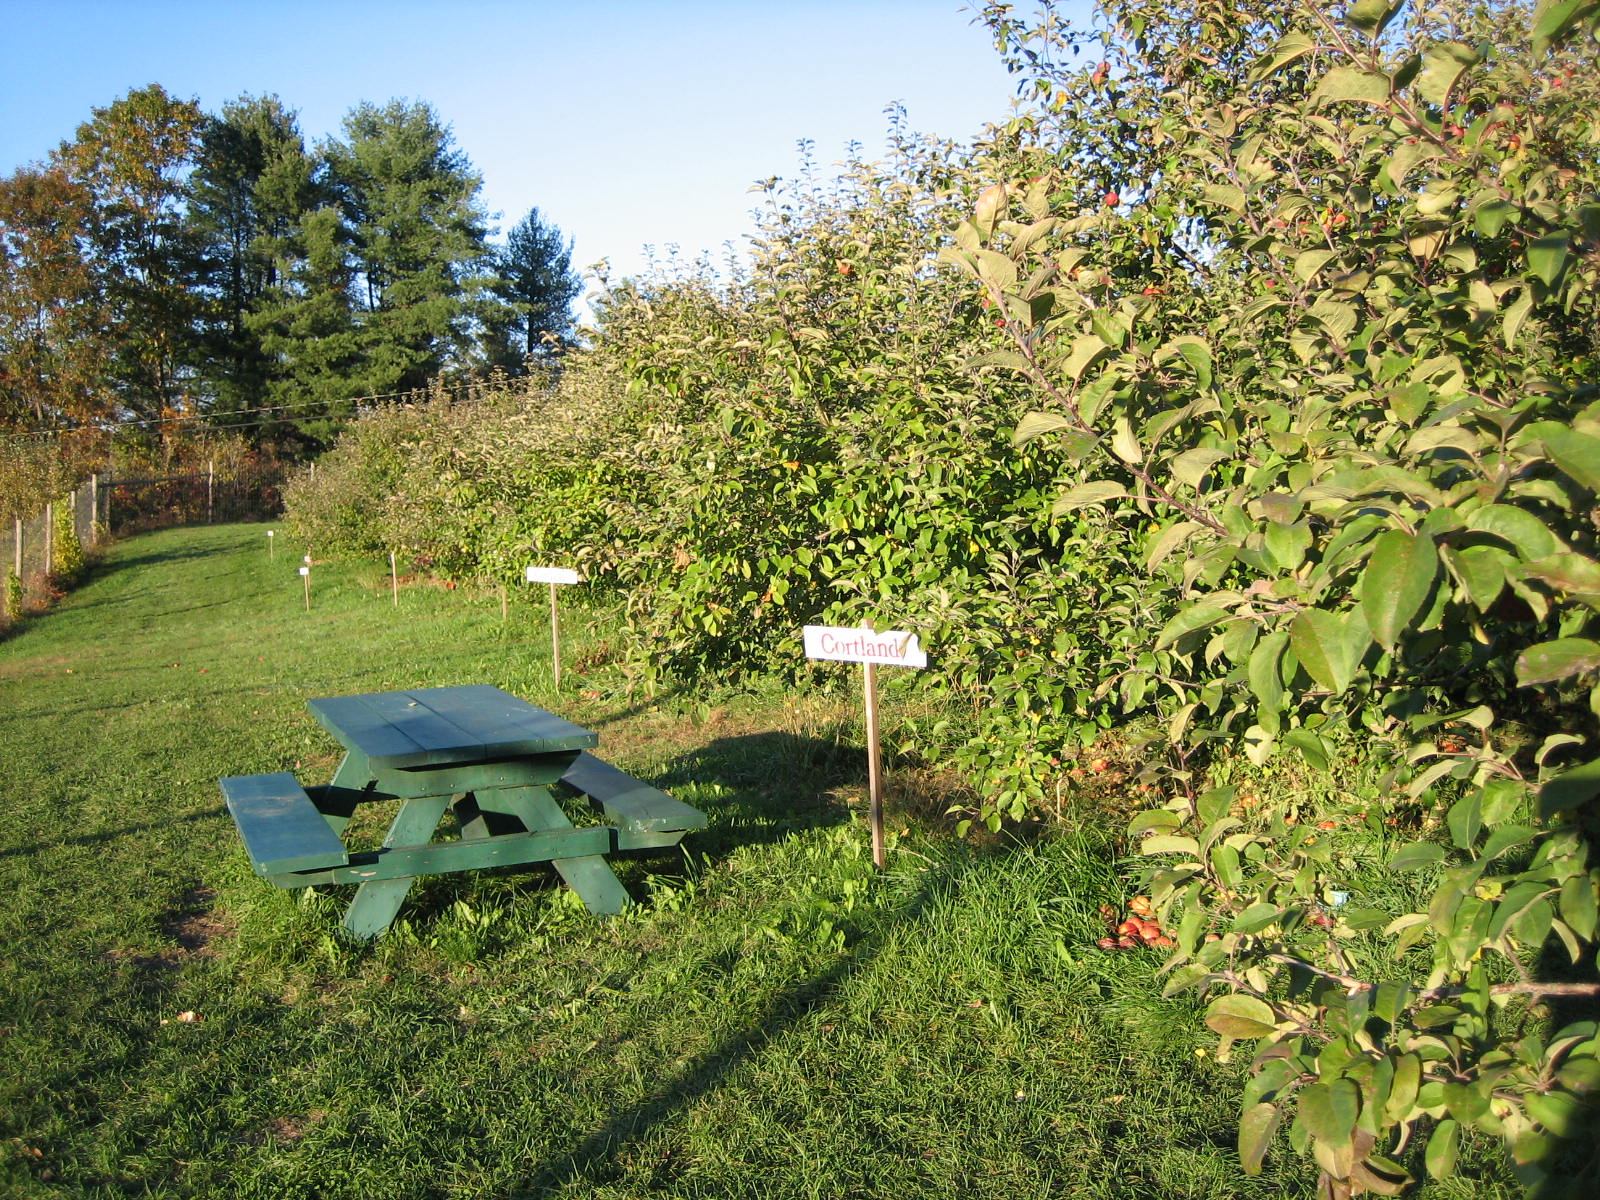 Easy Orchard Access    Our orchards, raspberries and blueberries are within an easy walk from our parking areas. You can also drive to them if it easier for members of your family, such as little ones or more senior members. We also offer hayrides as another way to reach our orchards and to enjoy the views of our farm and the Connecticut River along the way. The entire farm is handicap accessible for your convenience.